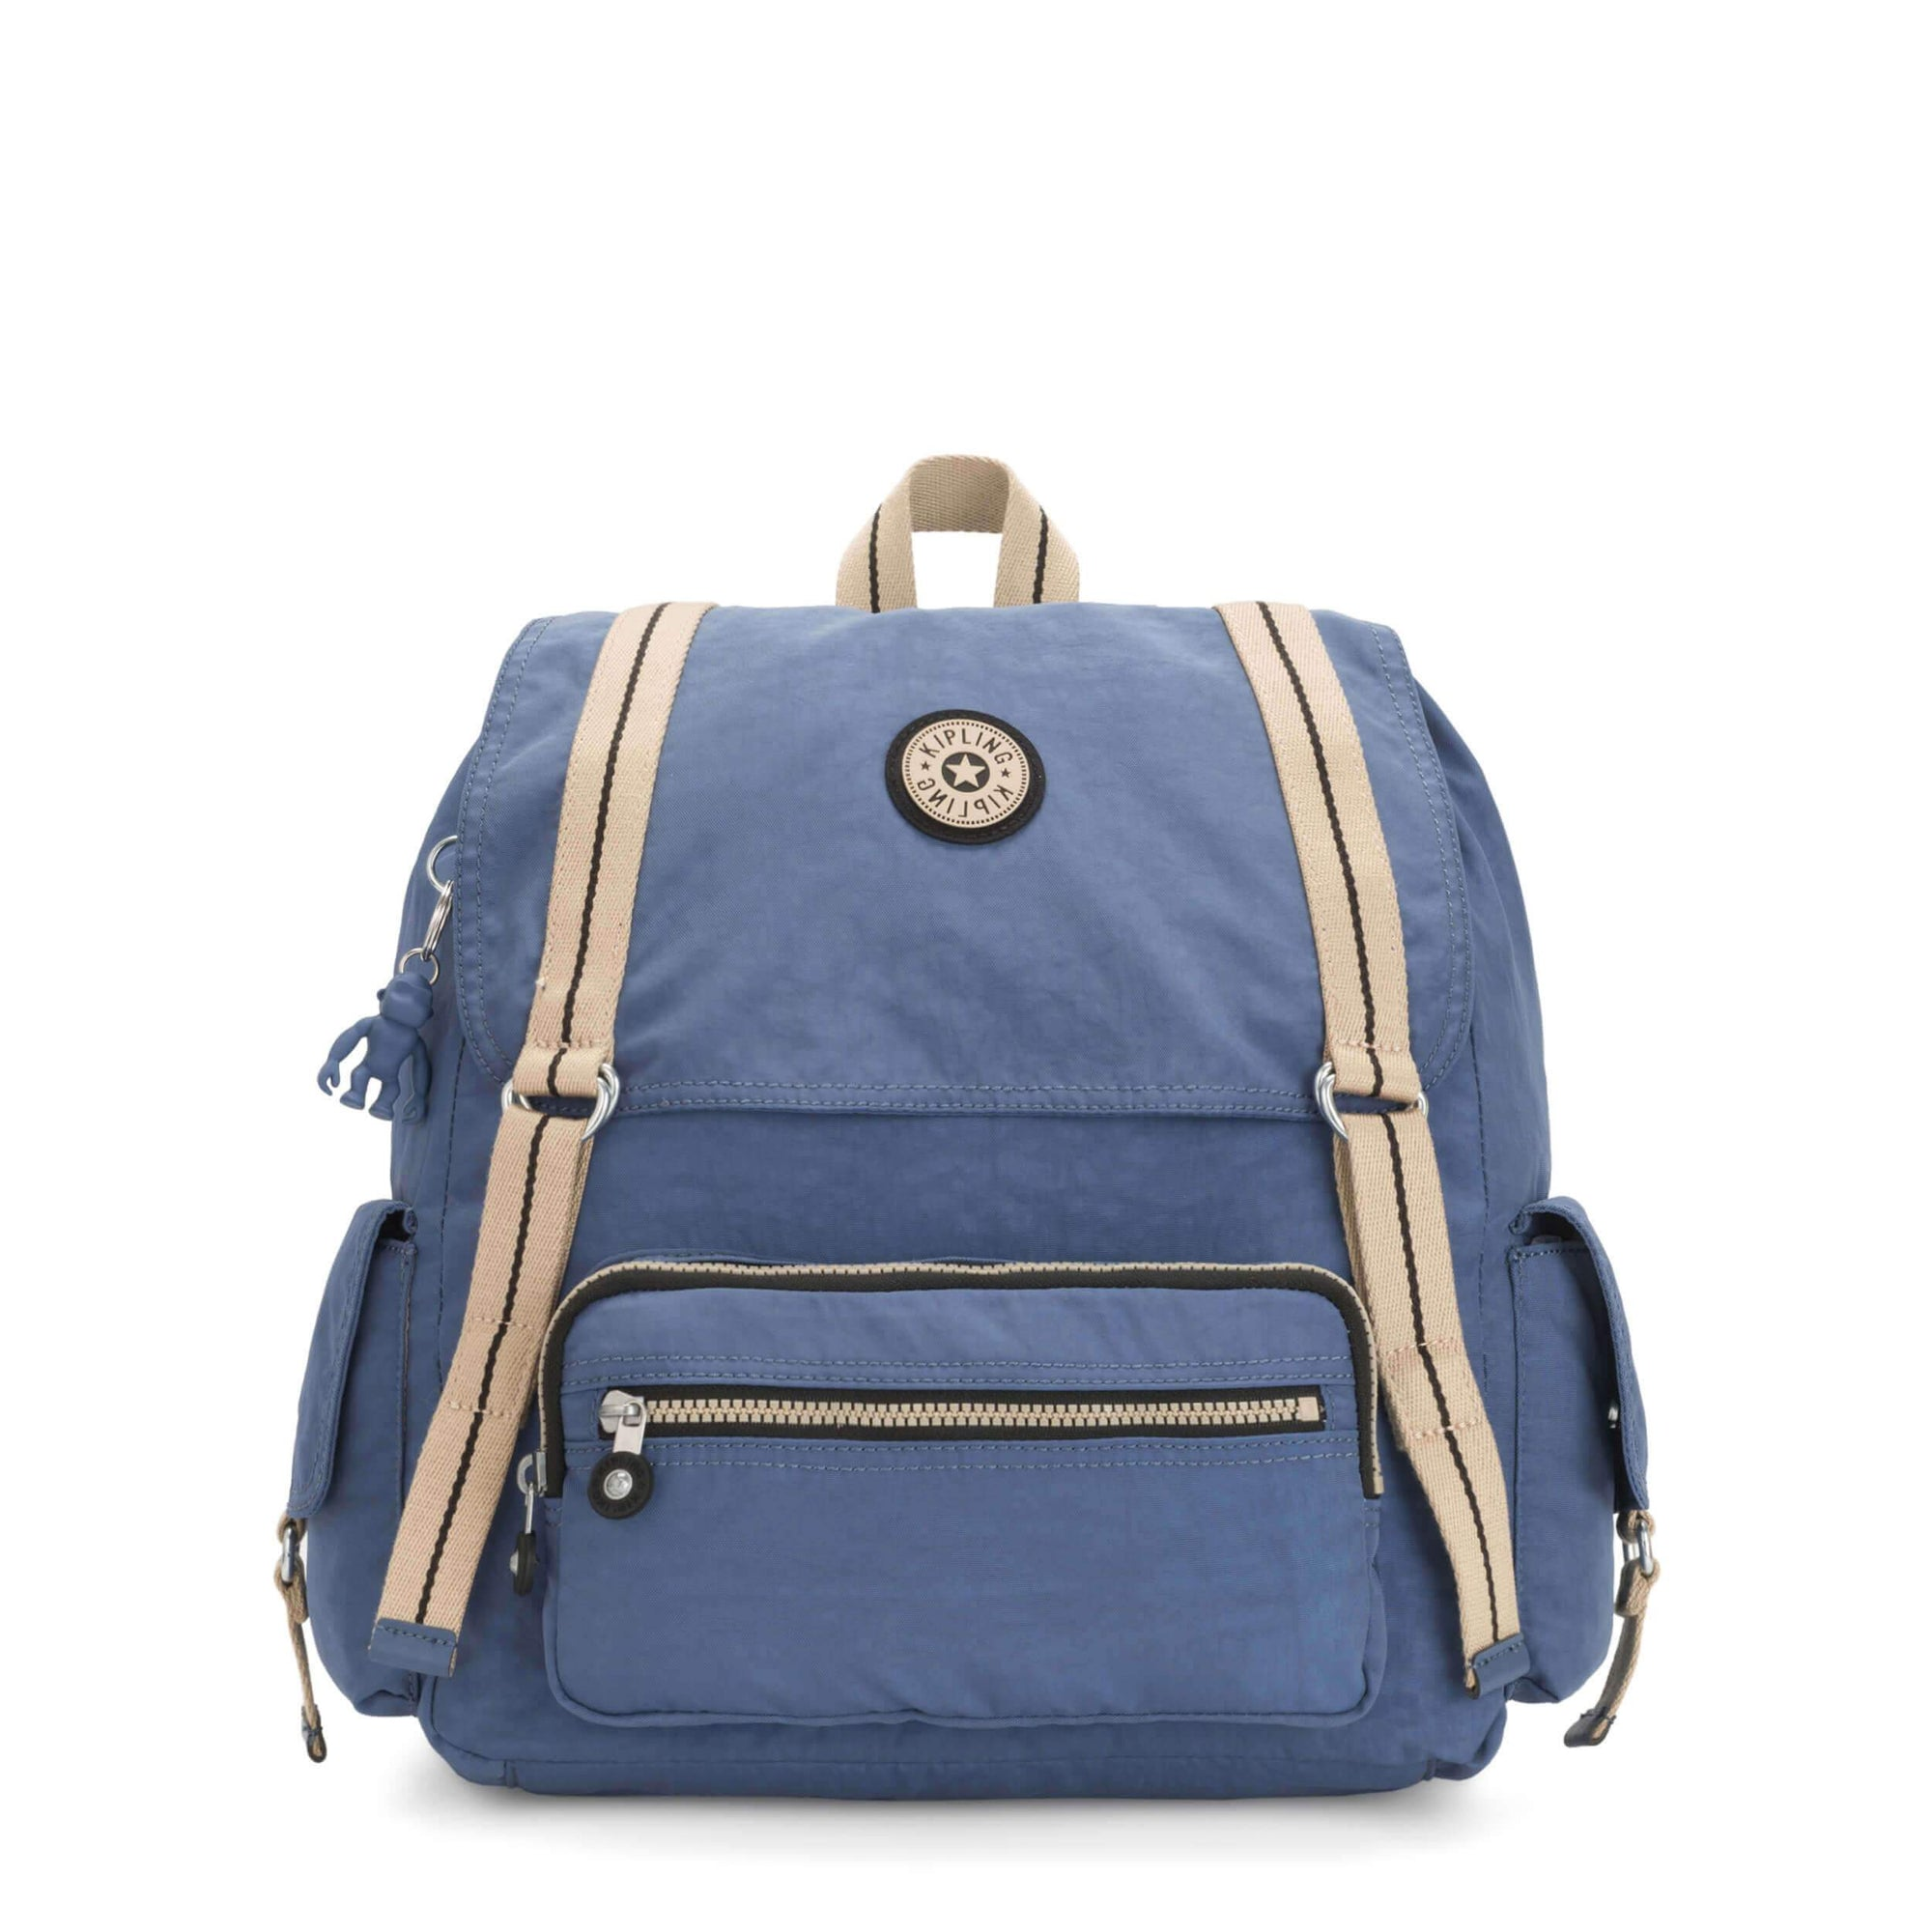 Backpack Kipling Attel Soulfull Blue C KI6230P72